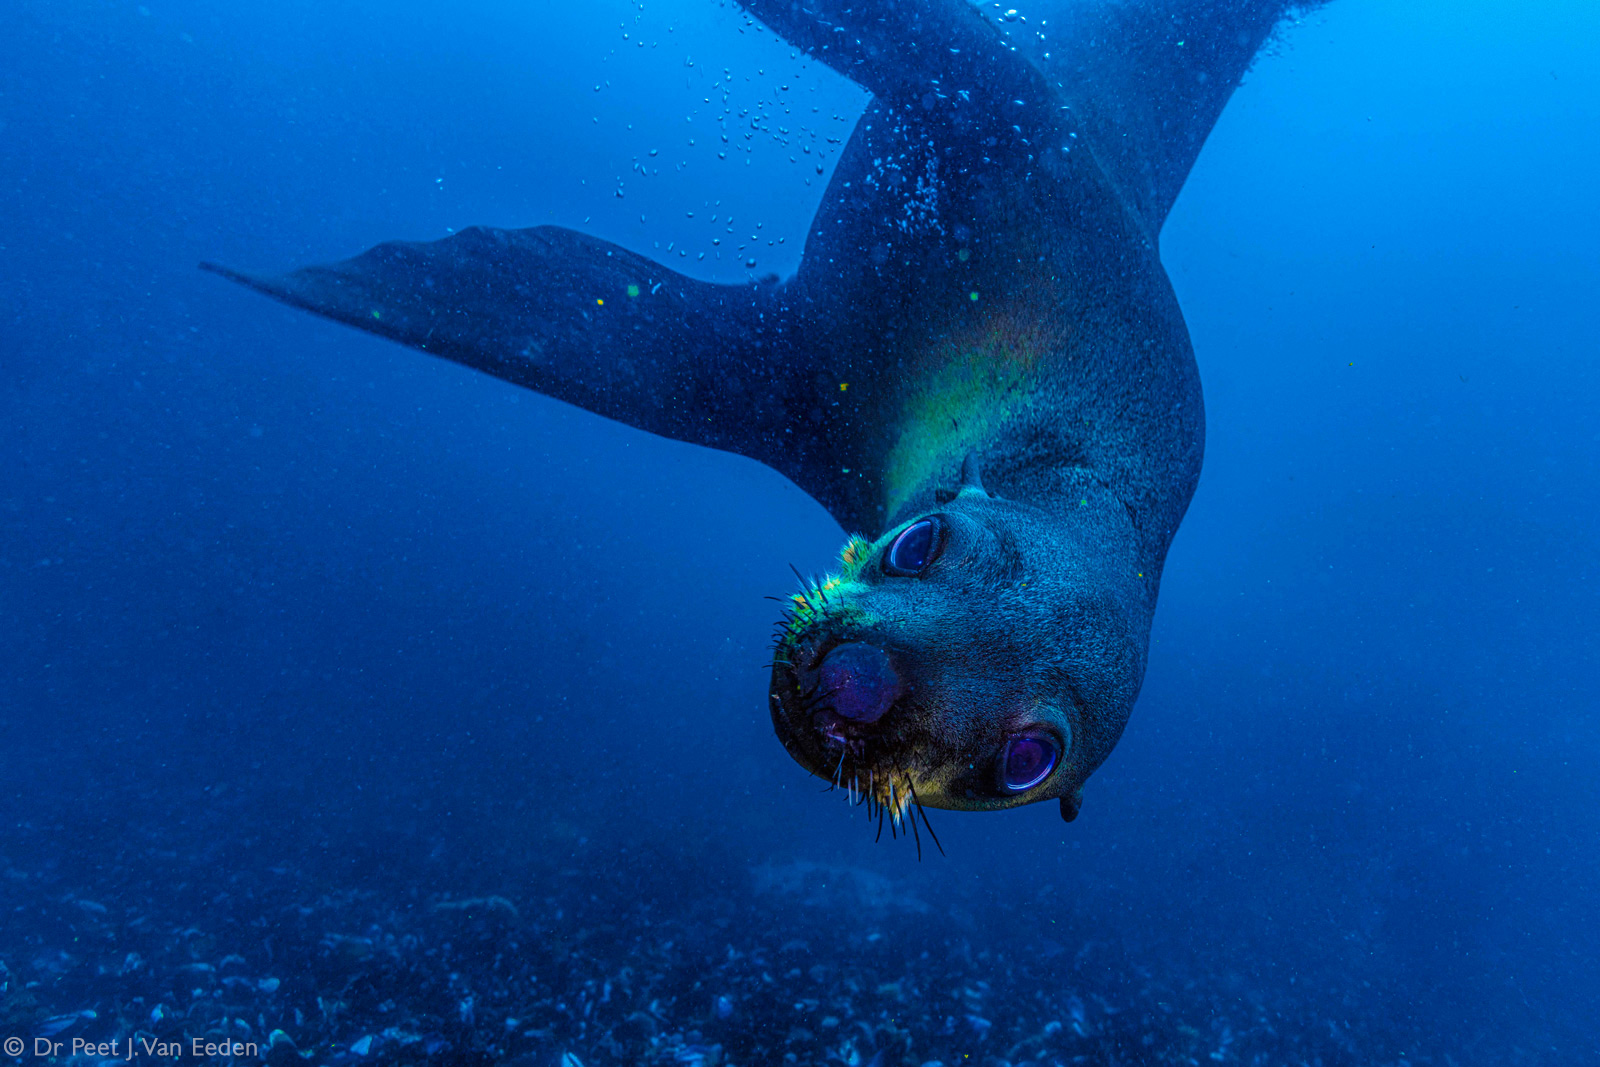 A playful seal during a dive near Seal Rock island. Partridge Point, Cape Peninsula, South Africa © Dr Peet J. Van Eeden